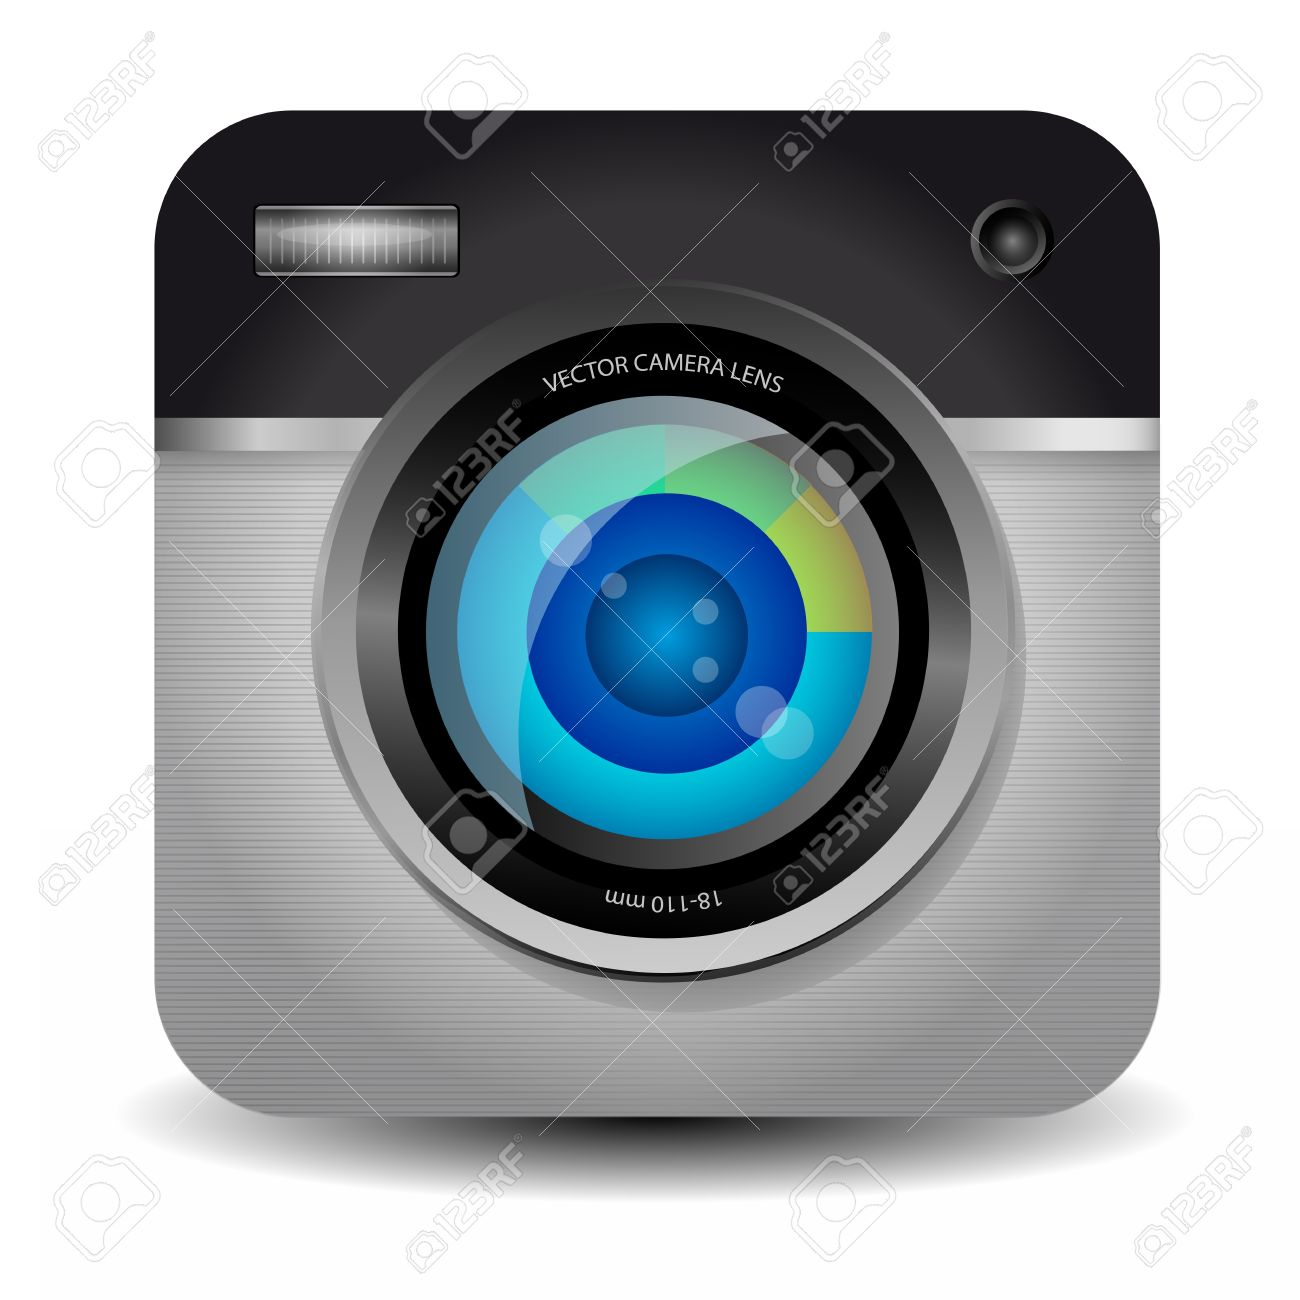 Photo Camera App Icon Royalty Free Cliparts, Vectors, And Stock ...